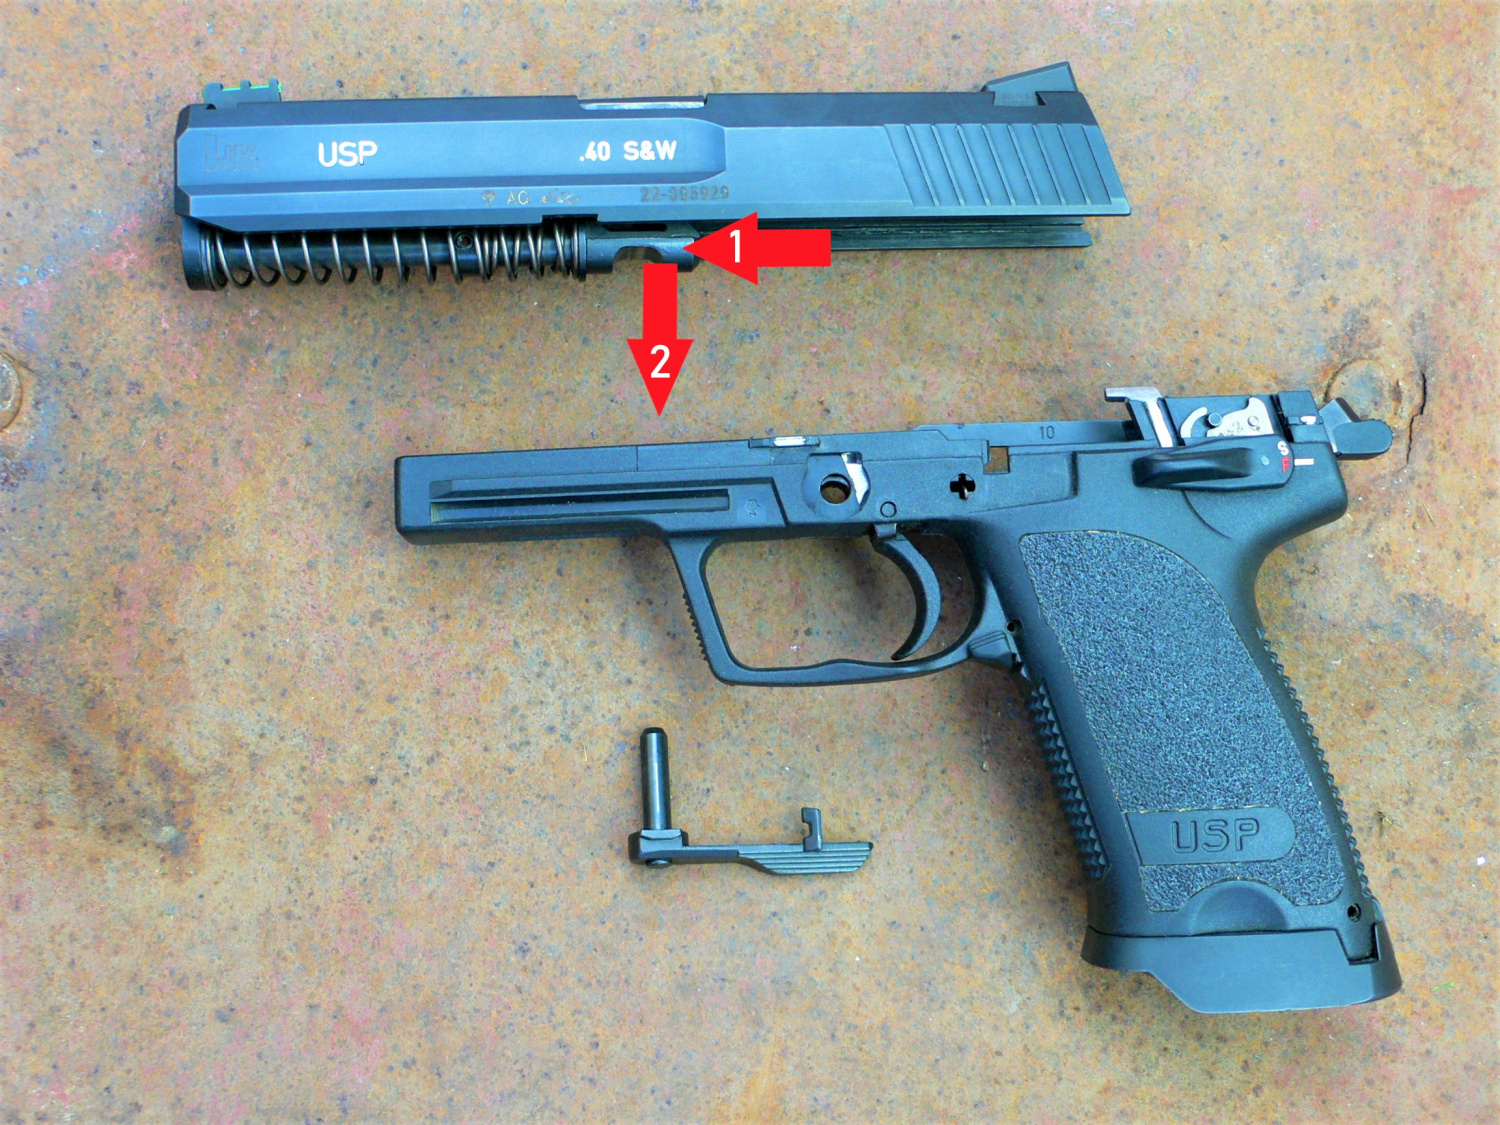 TFB Field Strip: HK USP